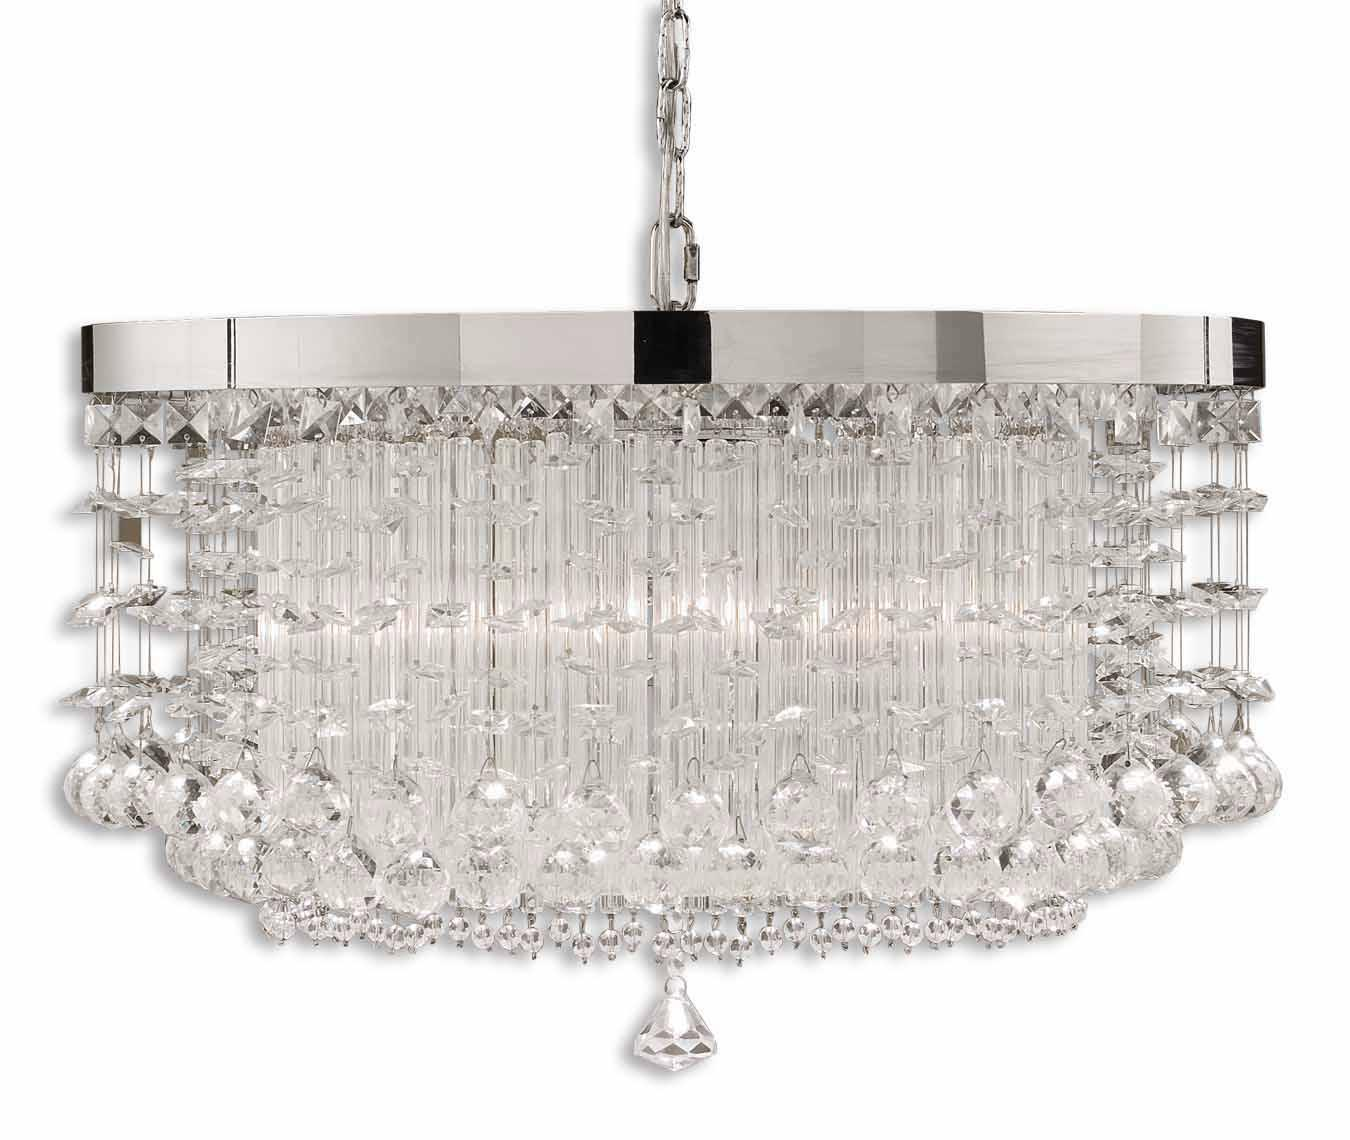 Uttermost Lighting Fixtures Fascination 3 Light Chandelier - Item Number: 21138